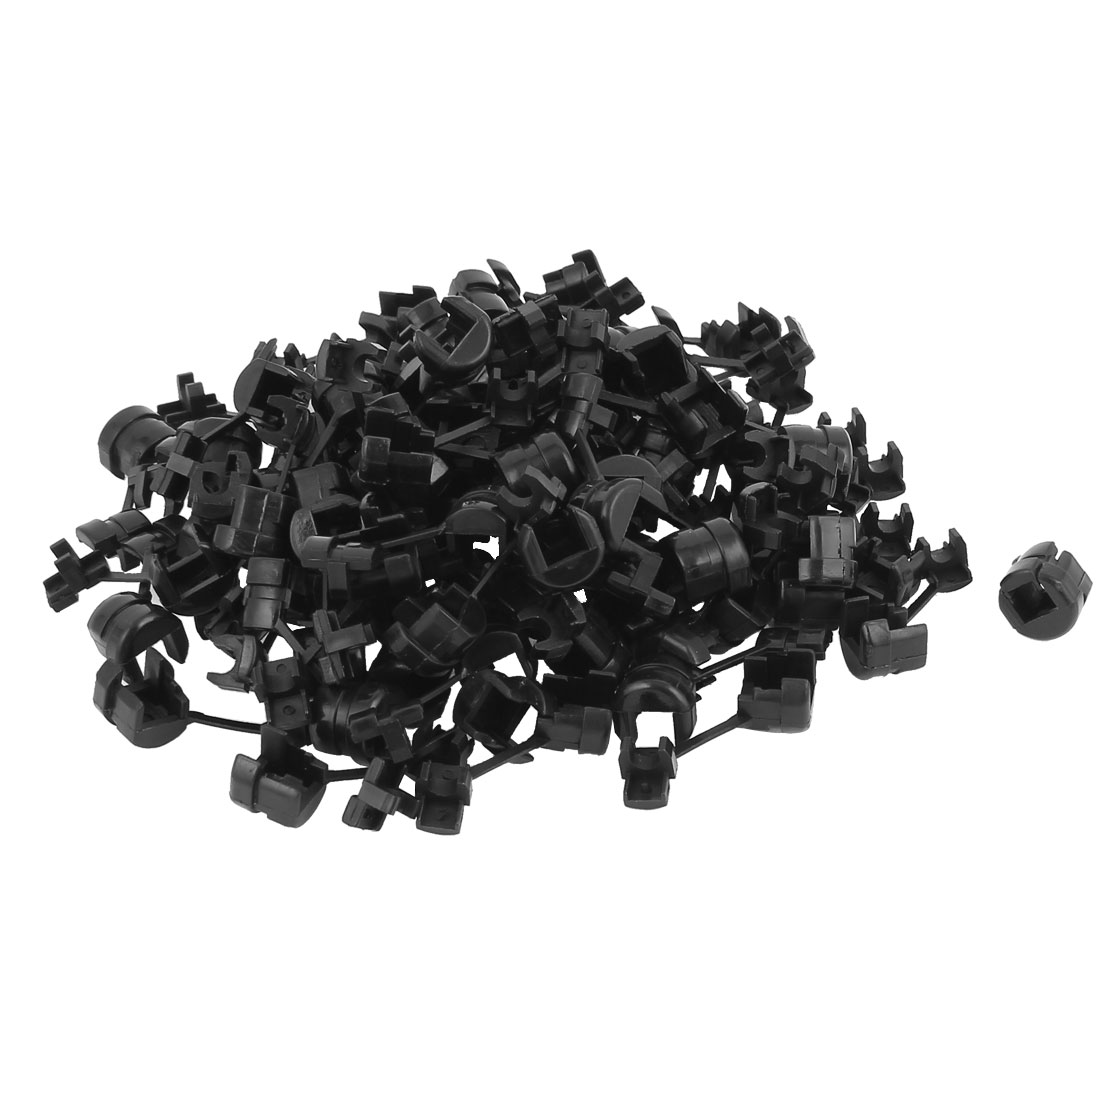 83 Pcs HDB-A7 Round Cable Wire Strain Relief Bush Grommet 11mm Length